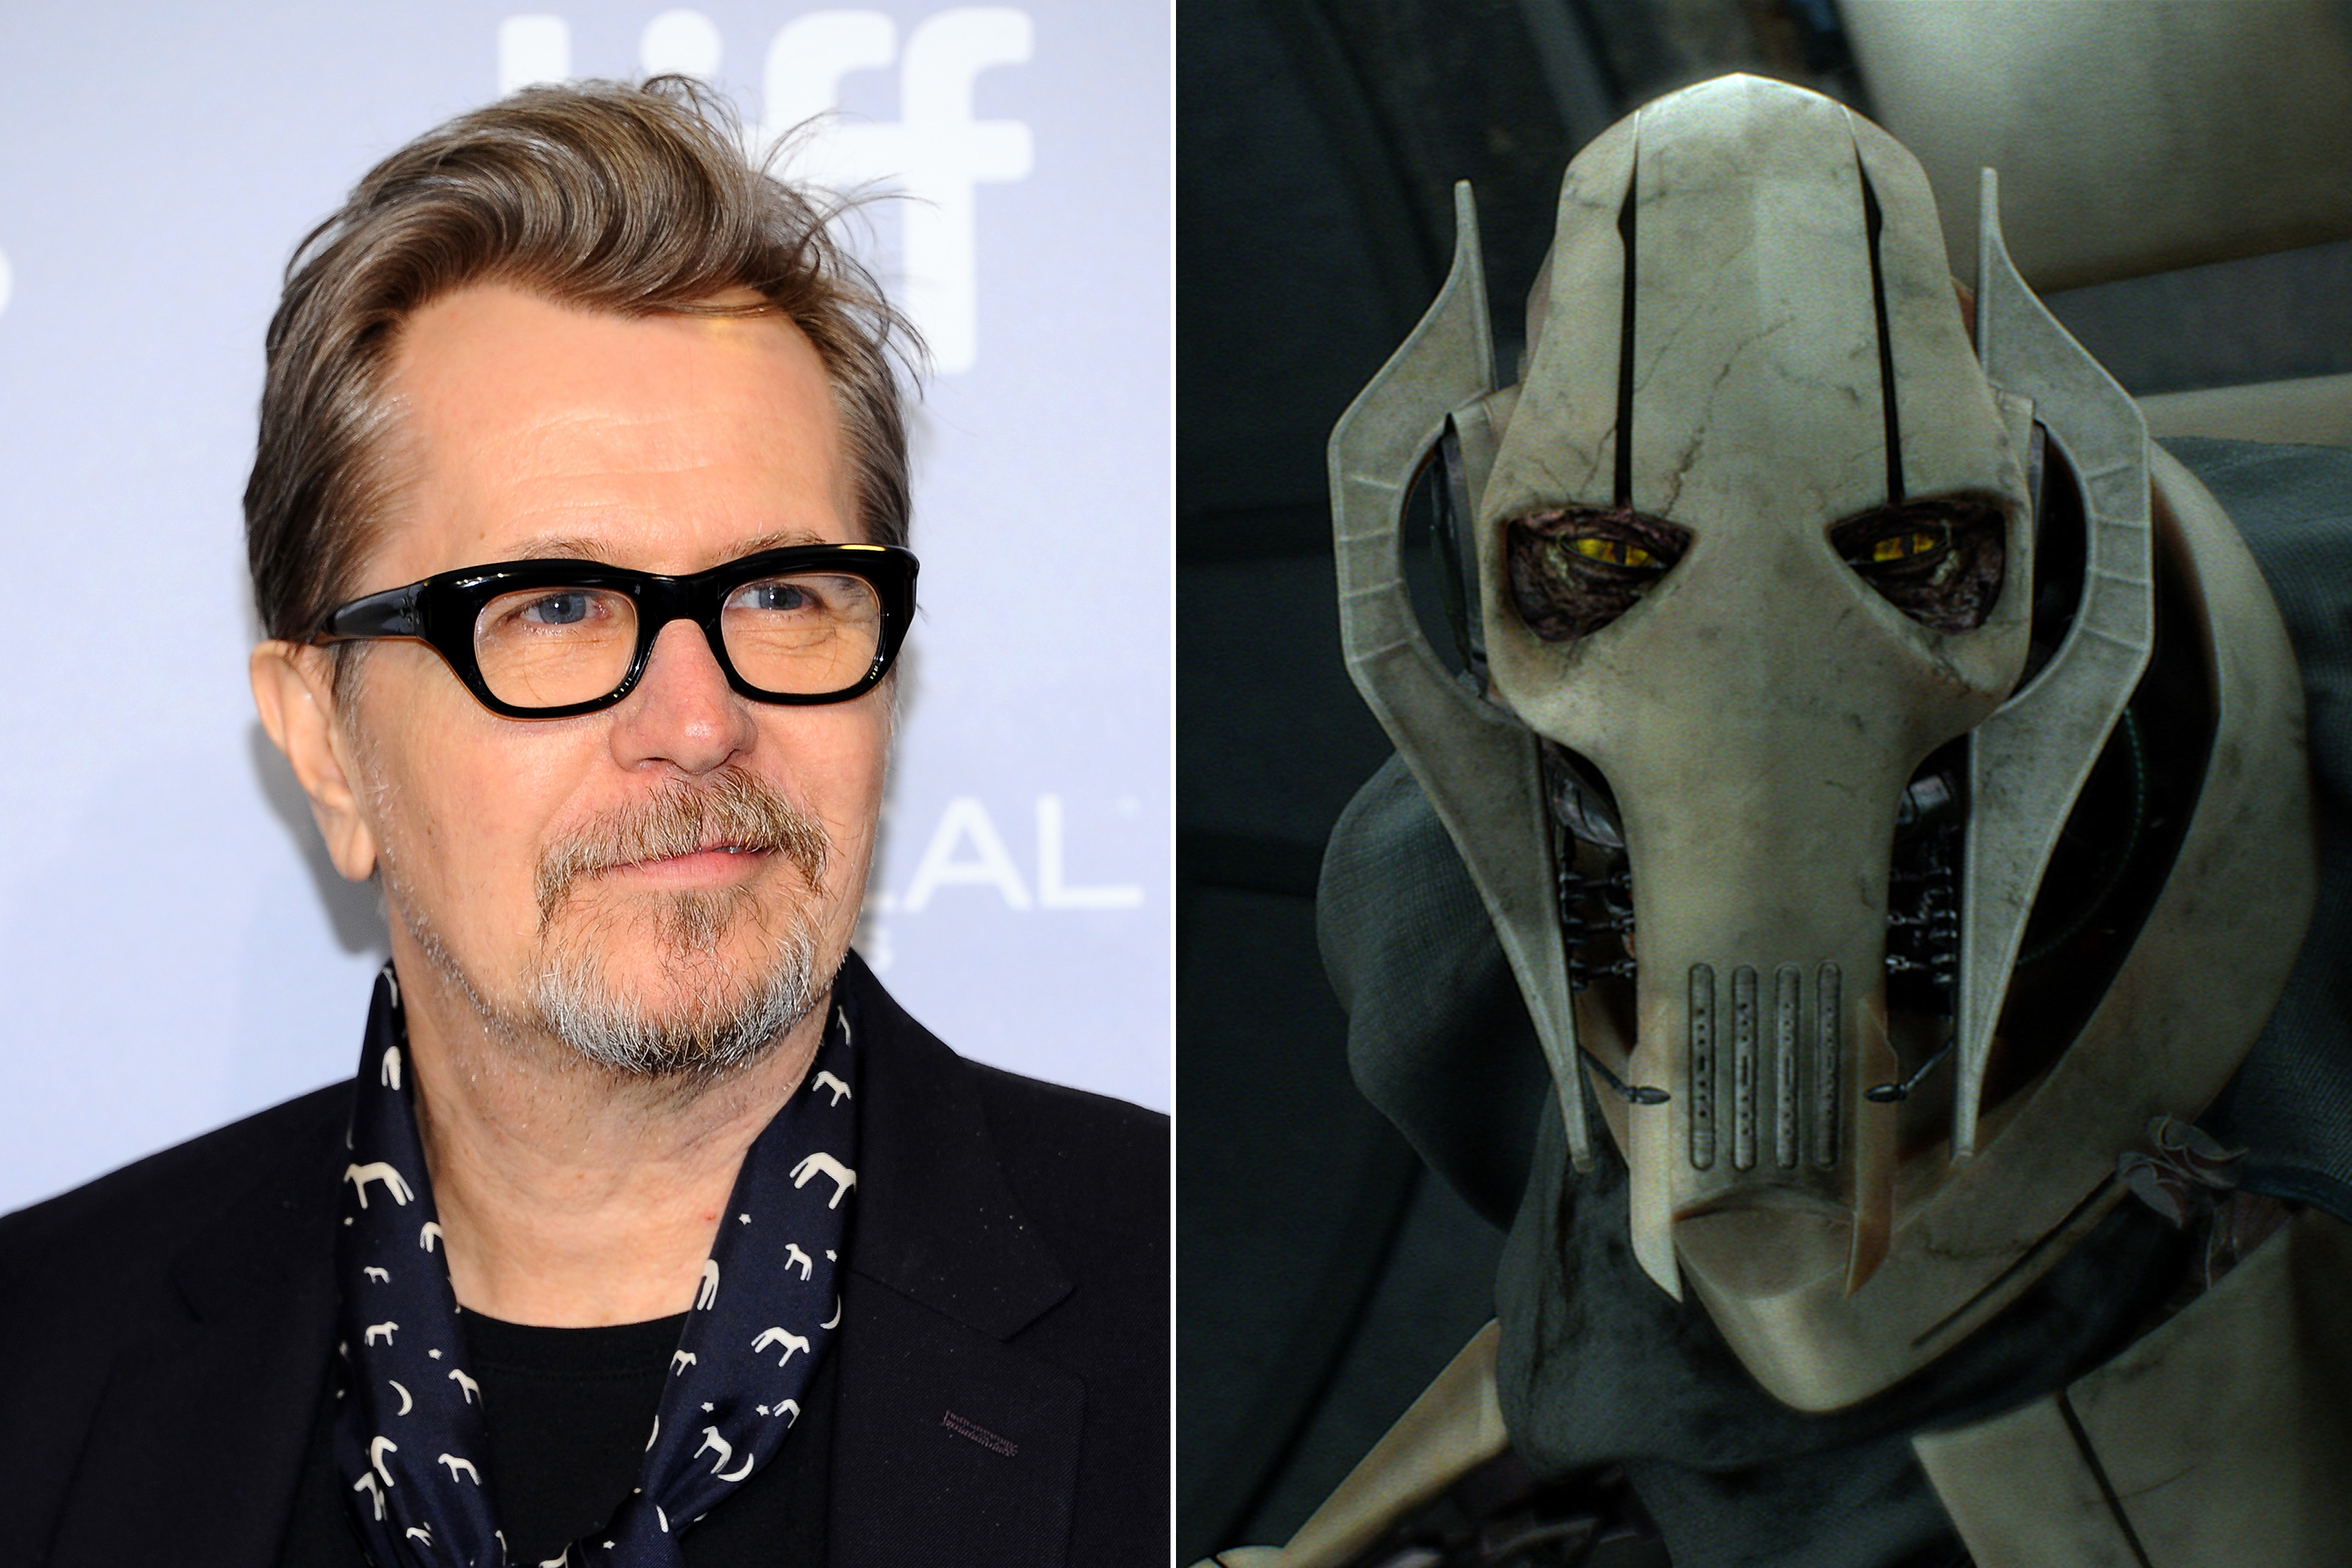 Gary Oldman was almost cast as General Grievious in Star Wars